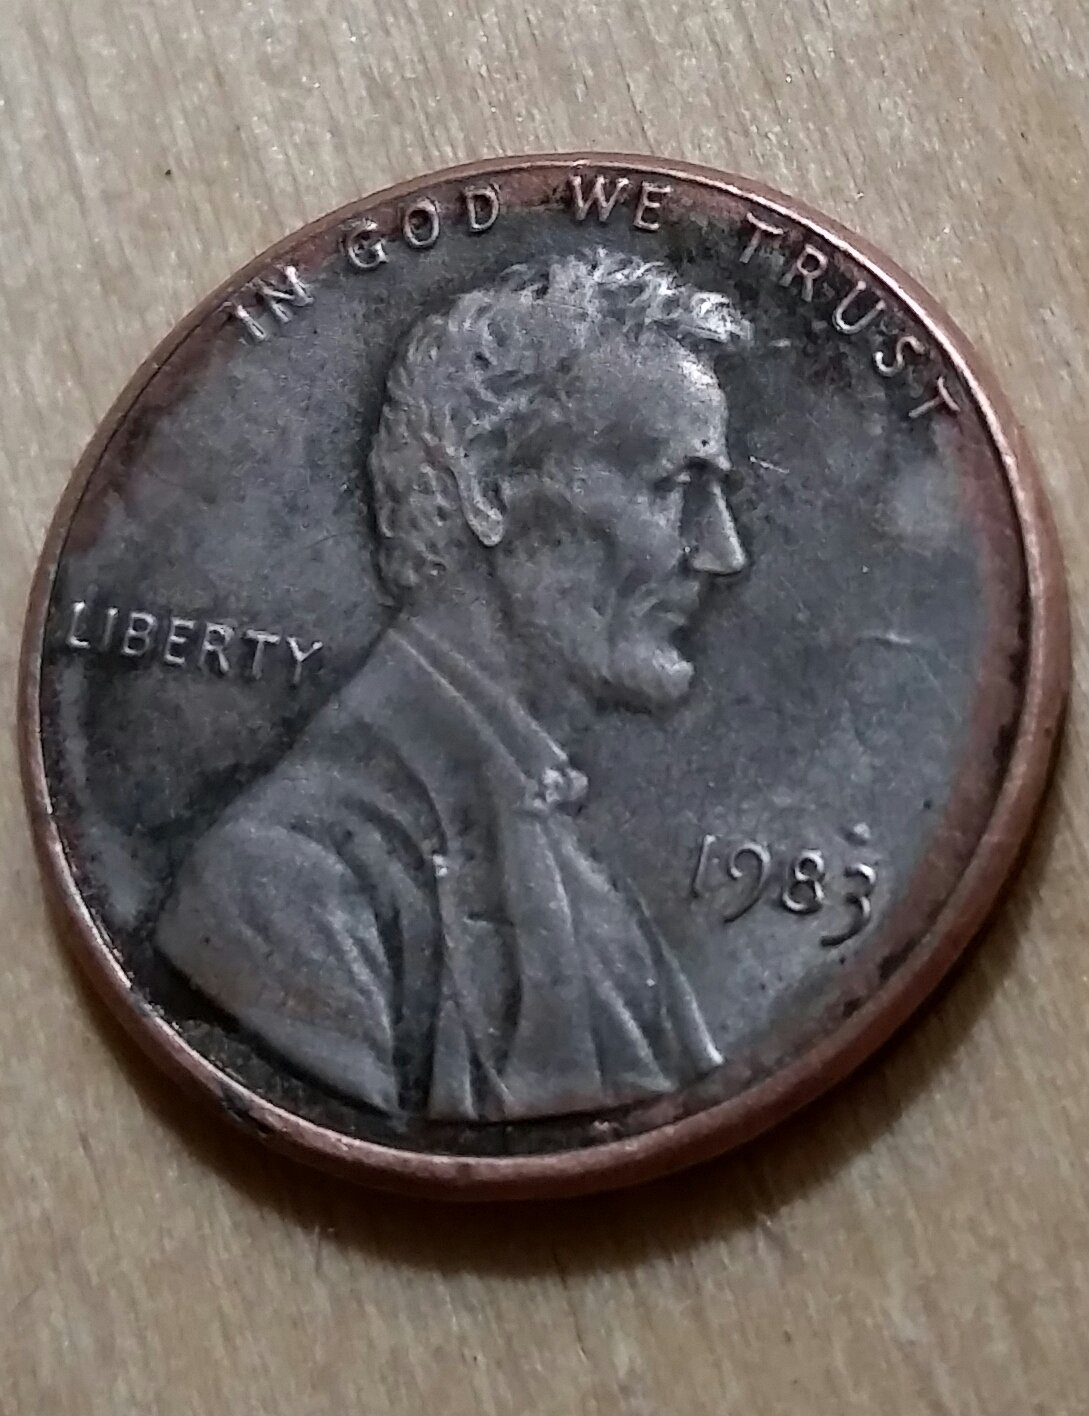 1999 Lincoln penny, Plain zinc, no copper layer? Very smooth  - Coin